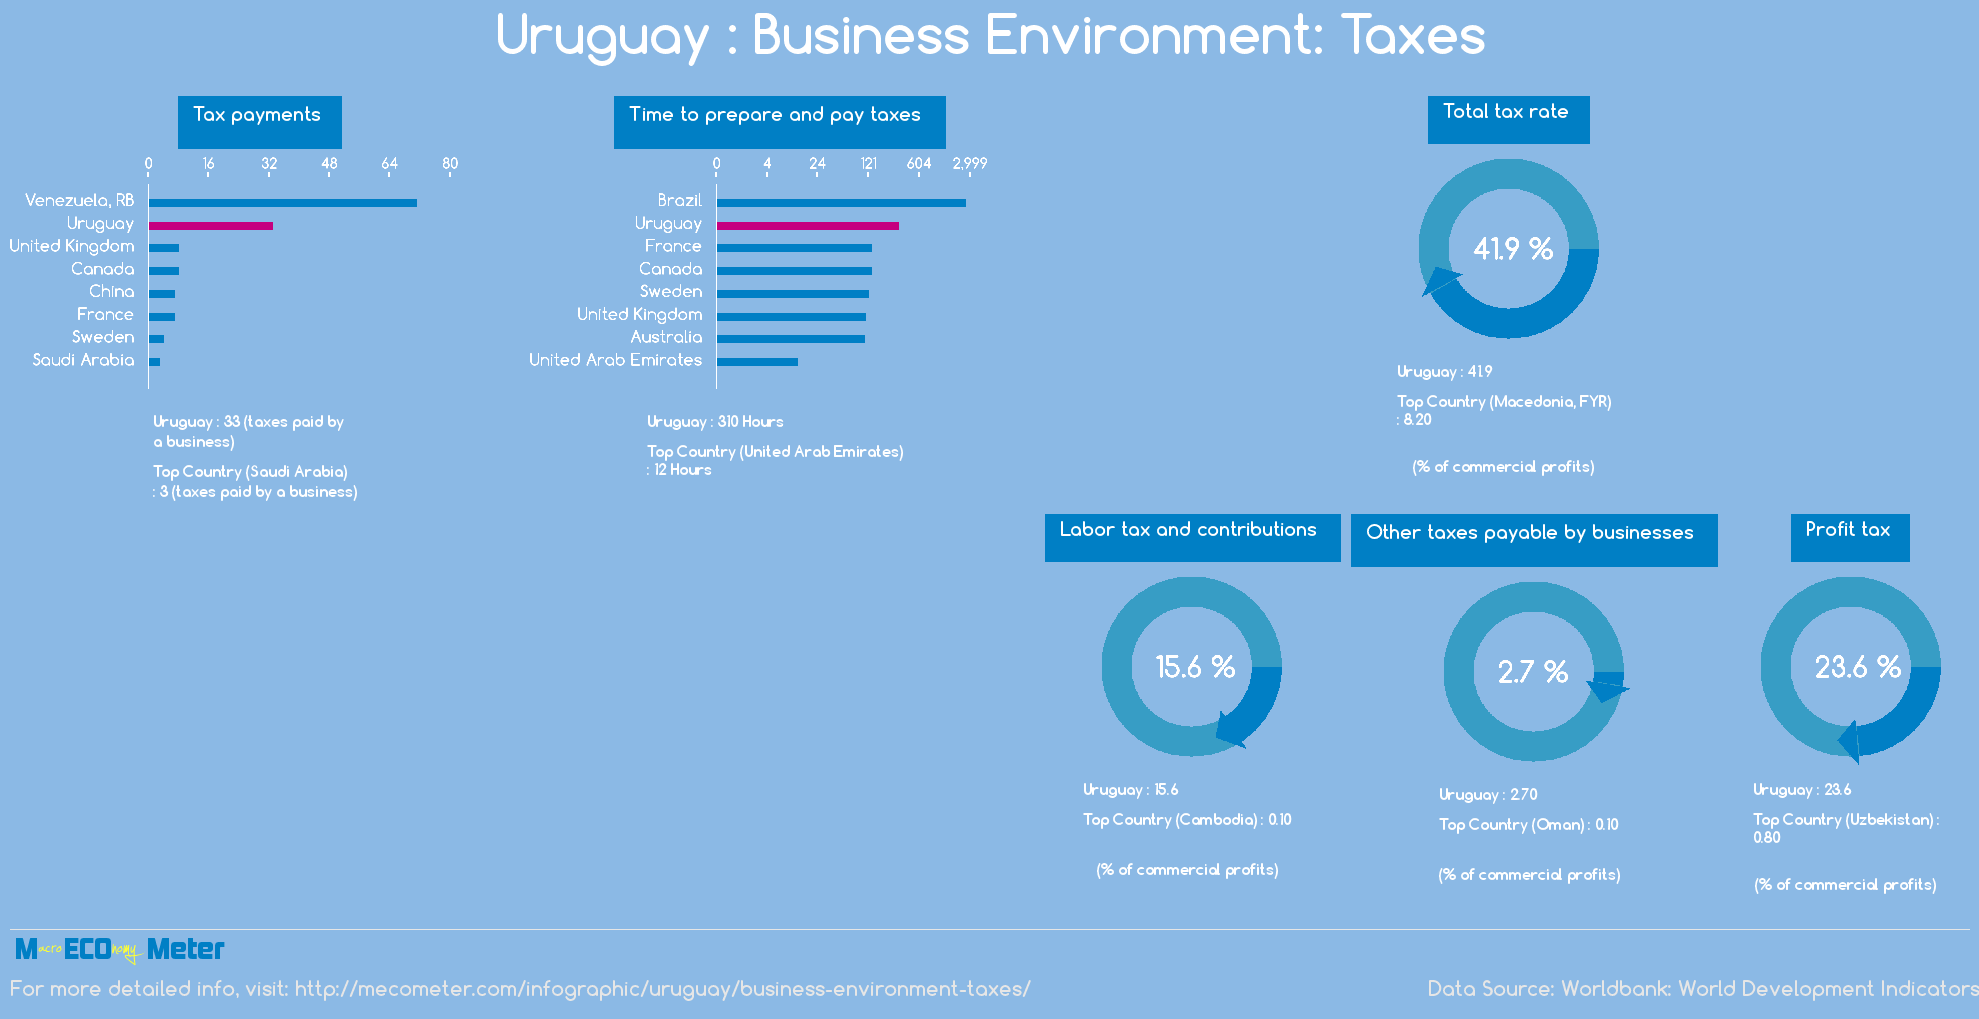 Uruguay : Business Environment: Taxes